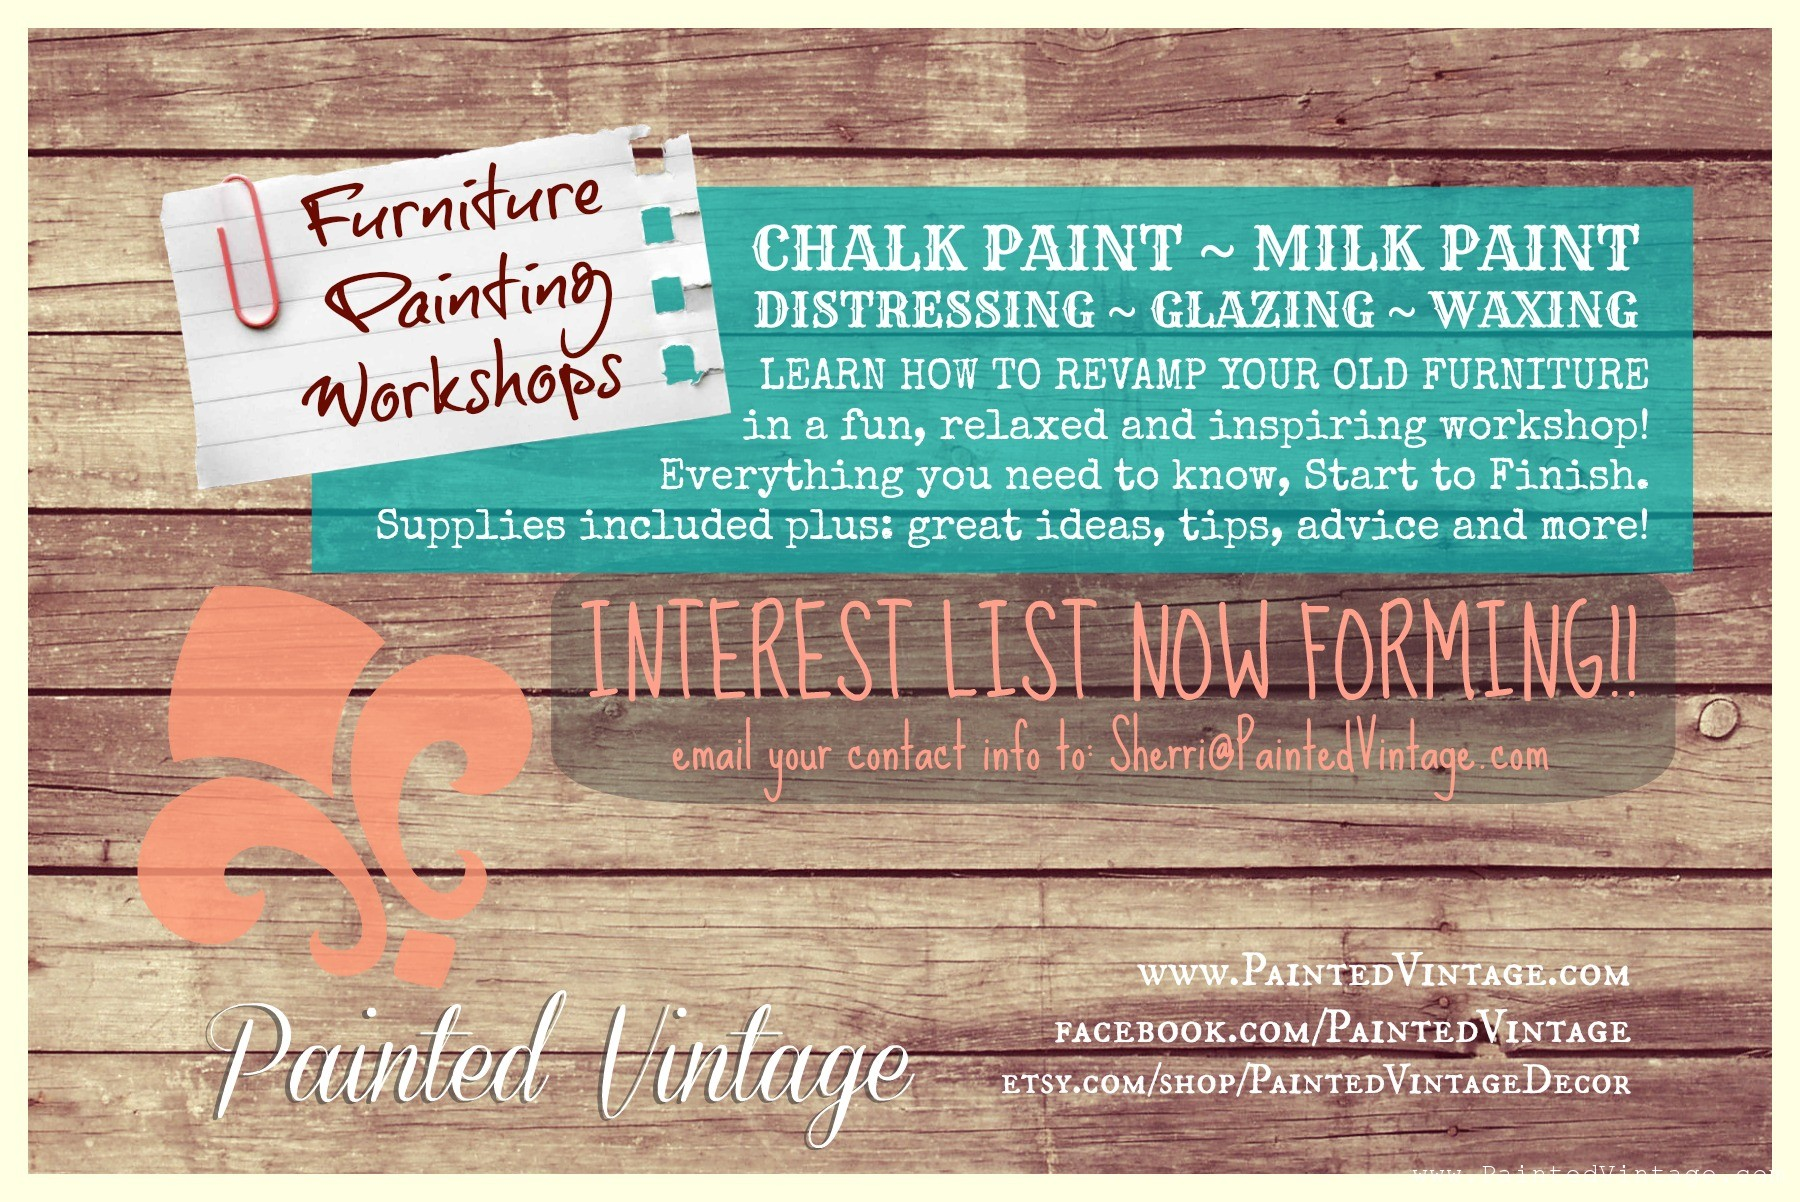 Furniture Painting Workshops